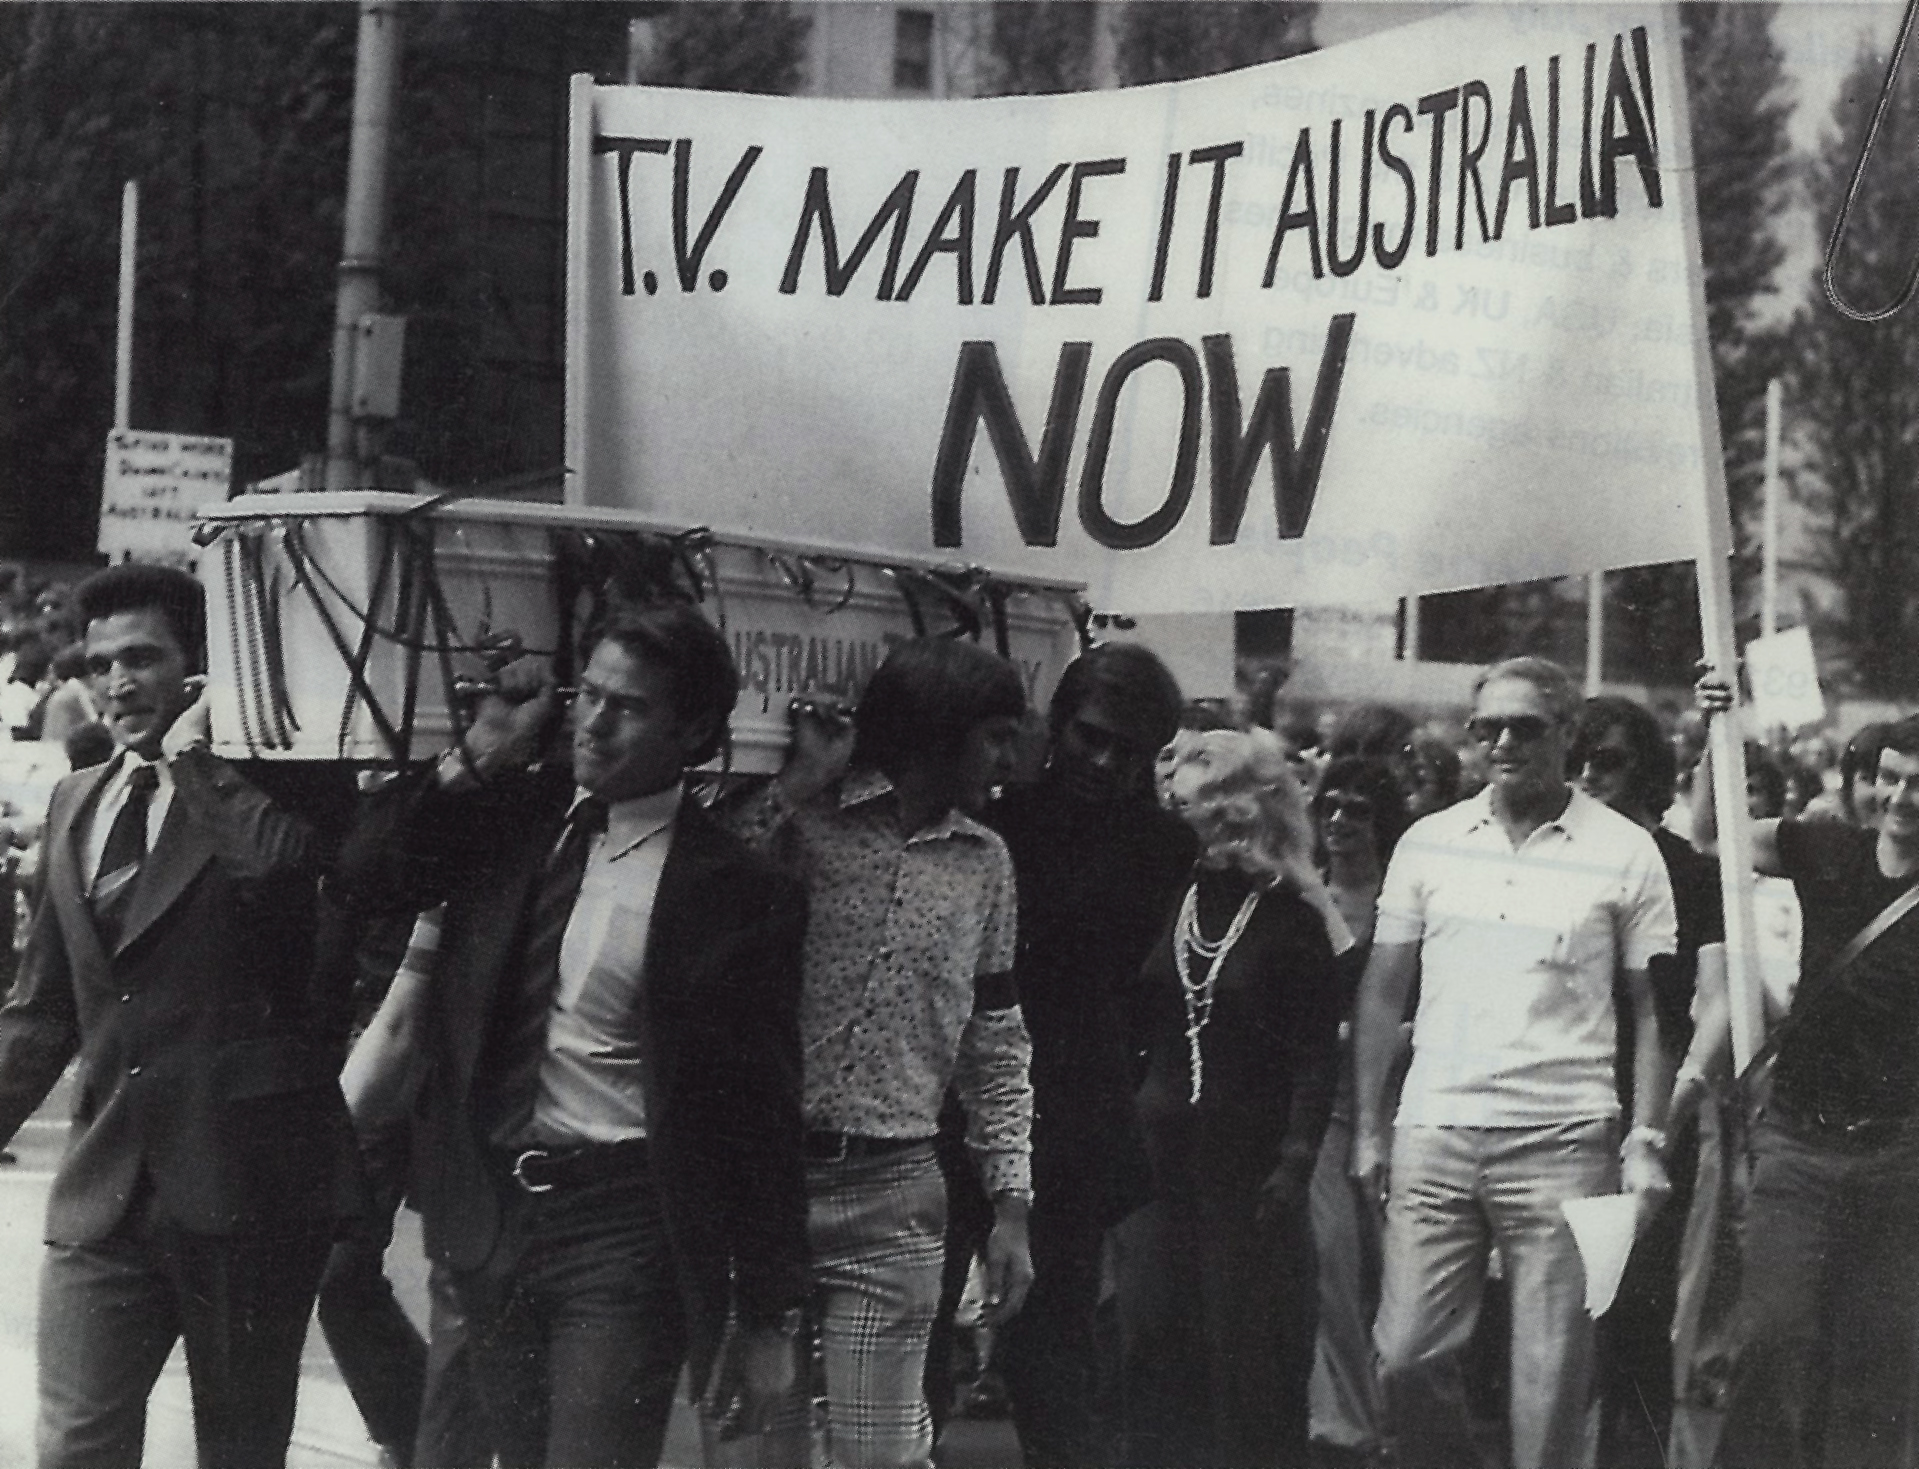 Australian actors, including cast members of  Homicide  and  Division 4  march through the centre of Melbourne in 1970  to demand local content quotas.